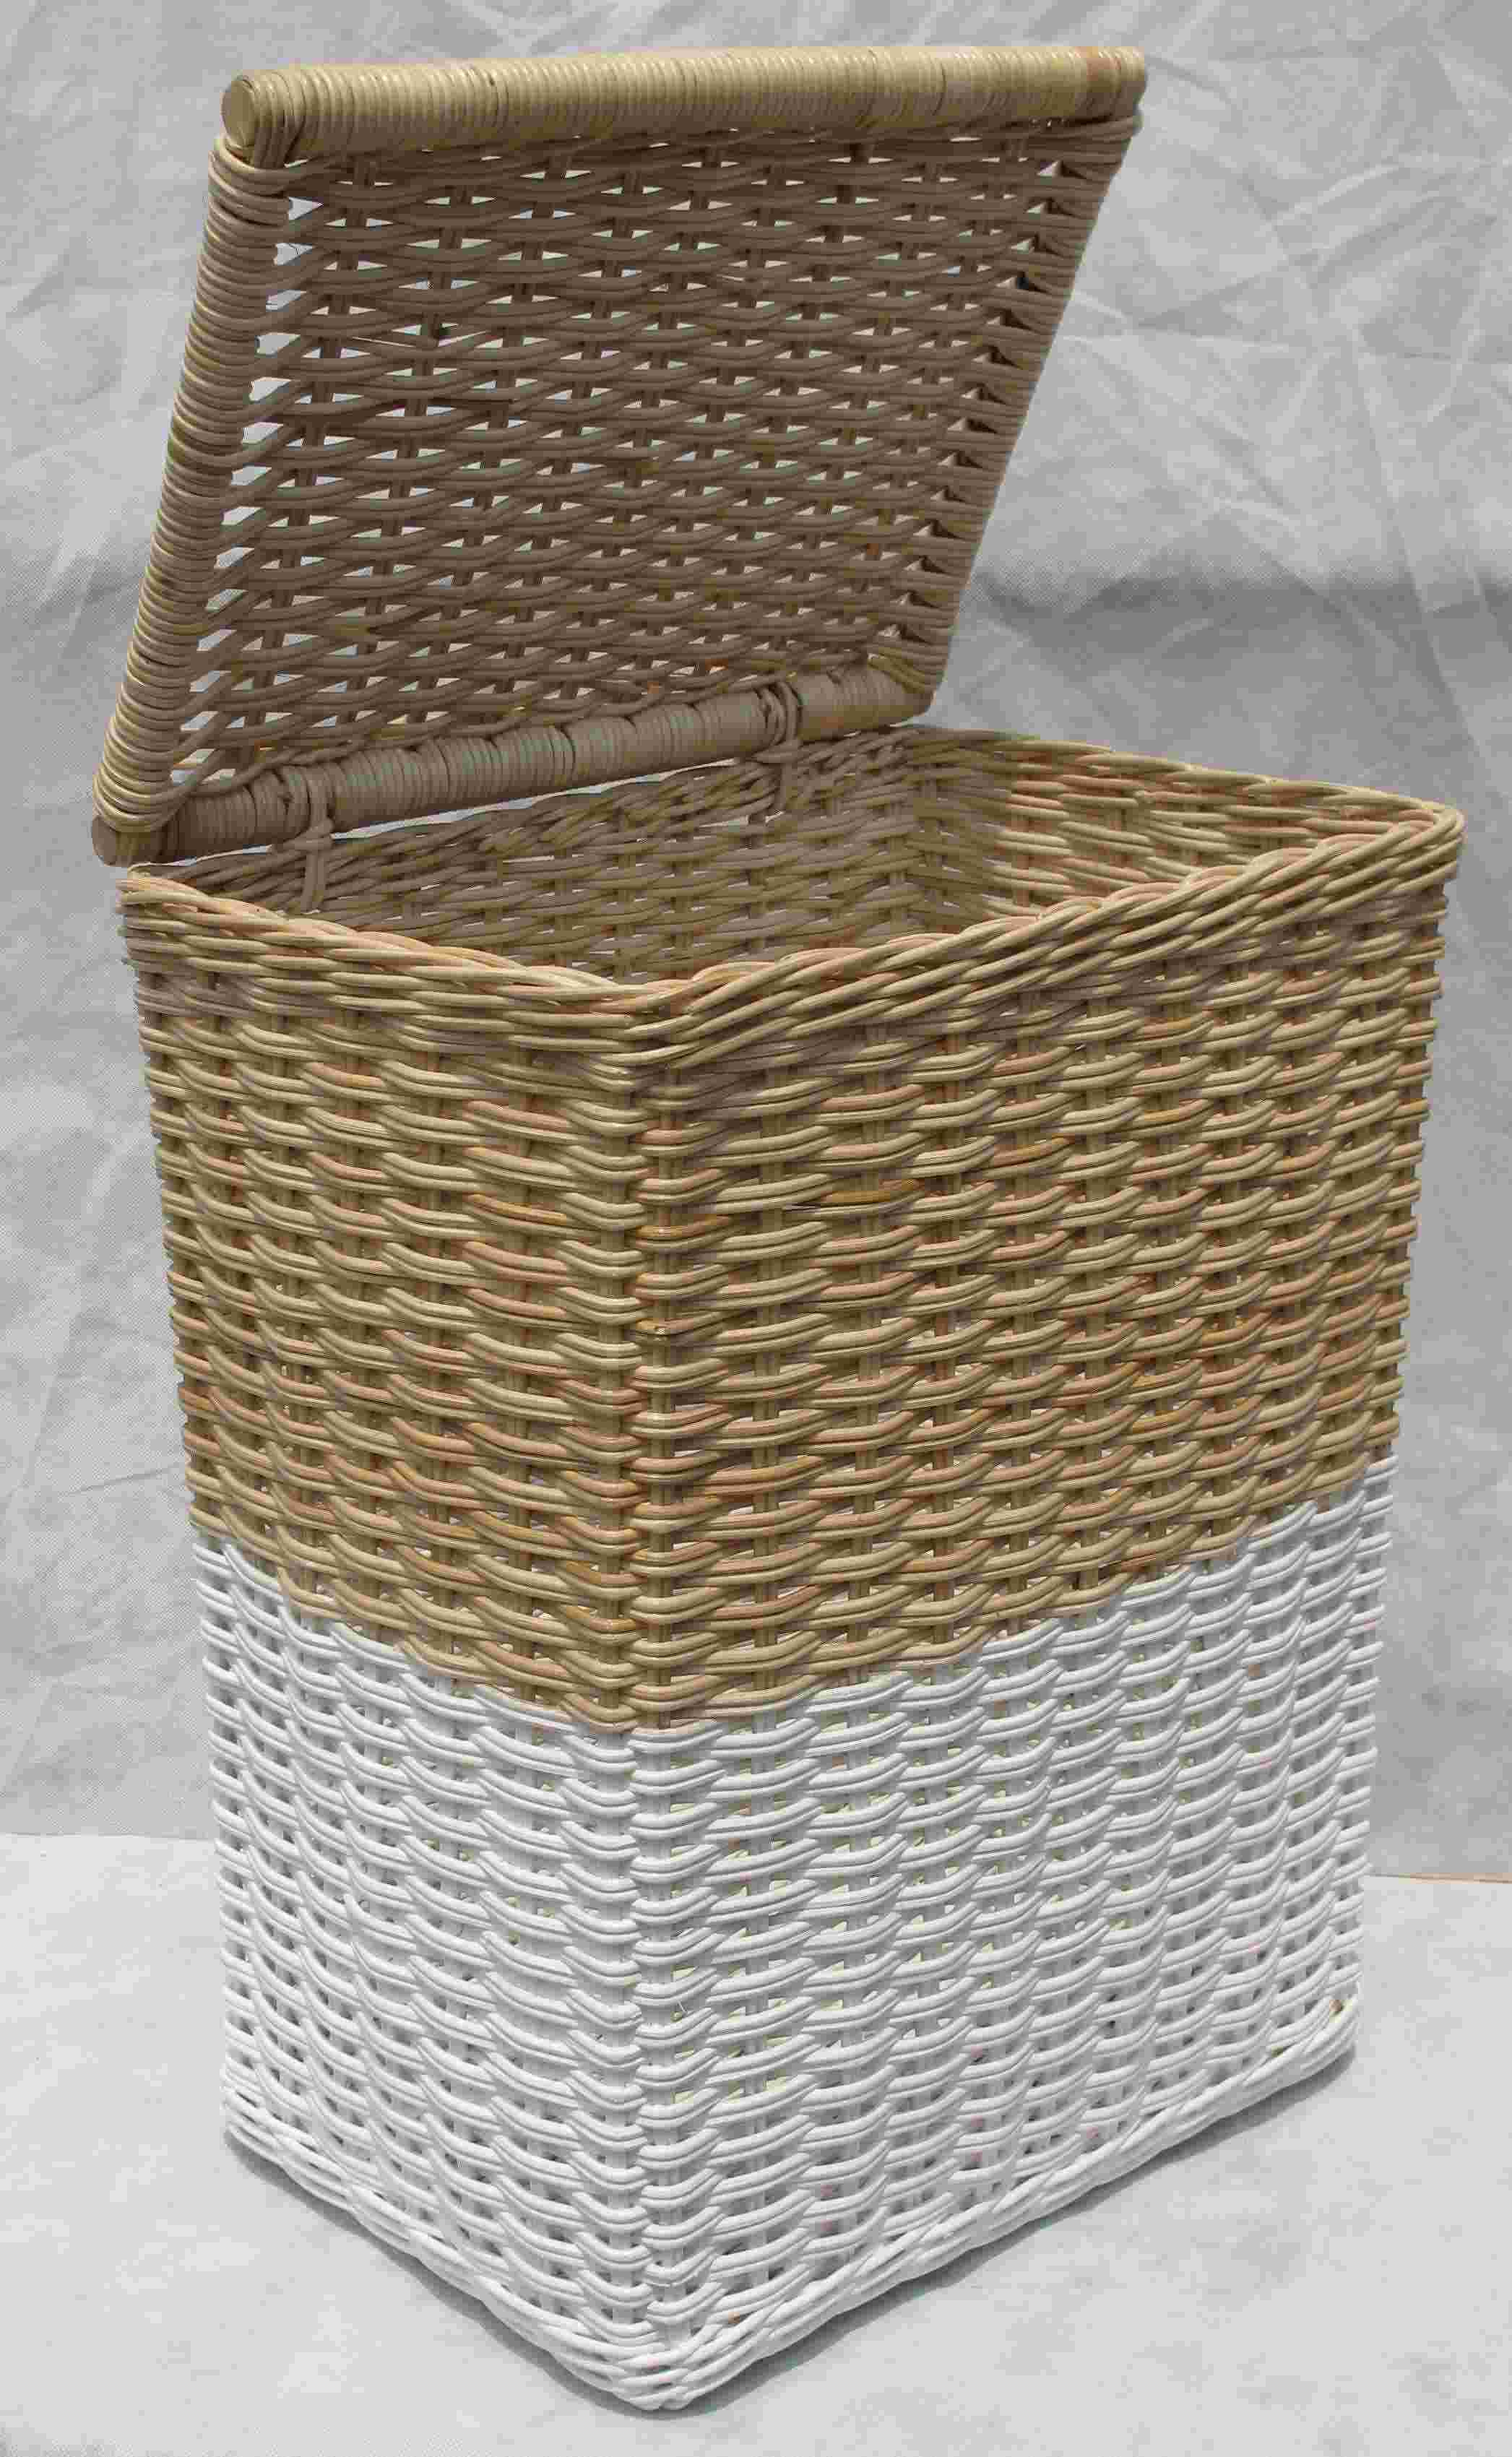 rattan wicker laundry baskets with lid